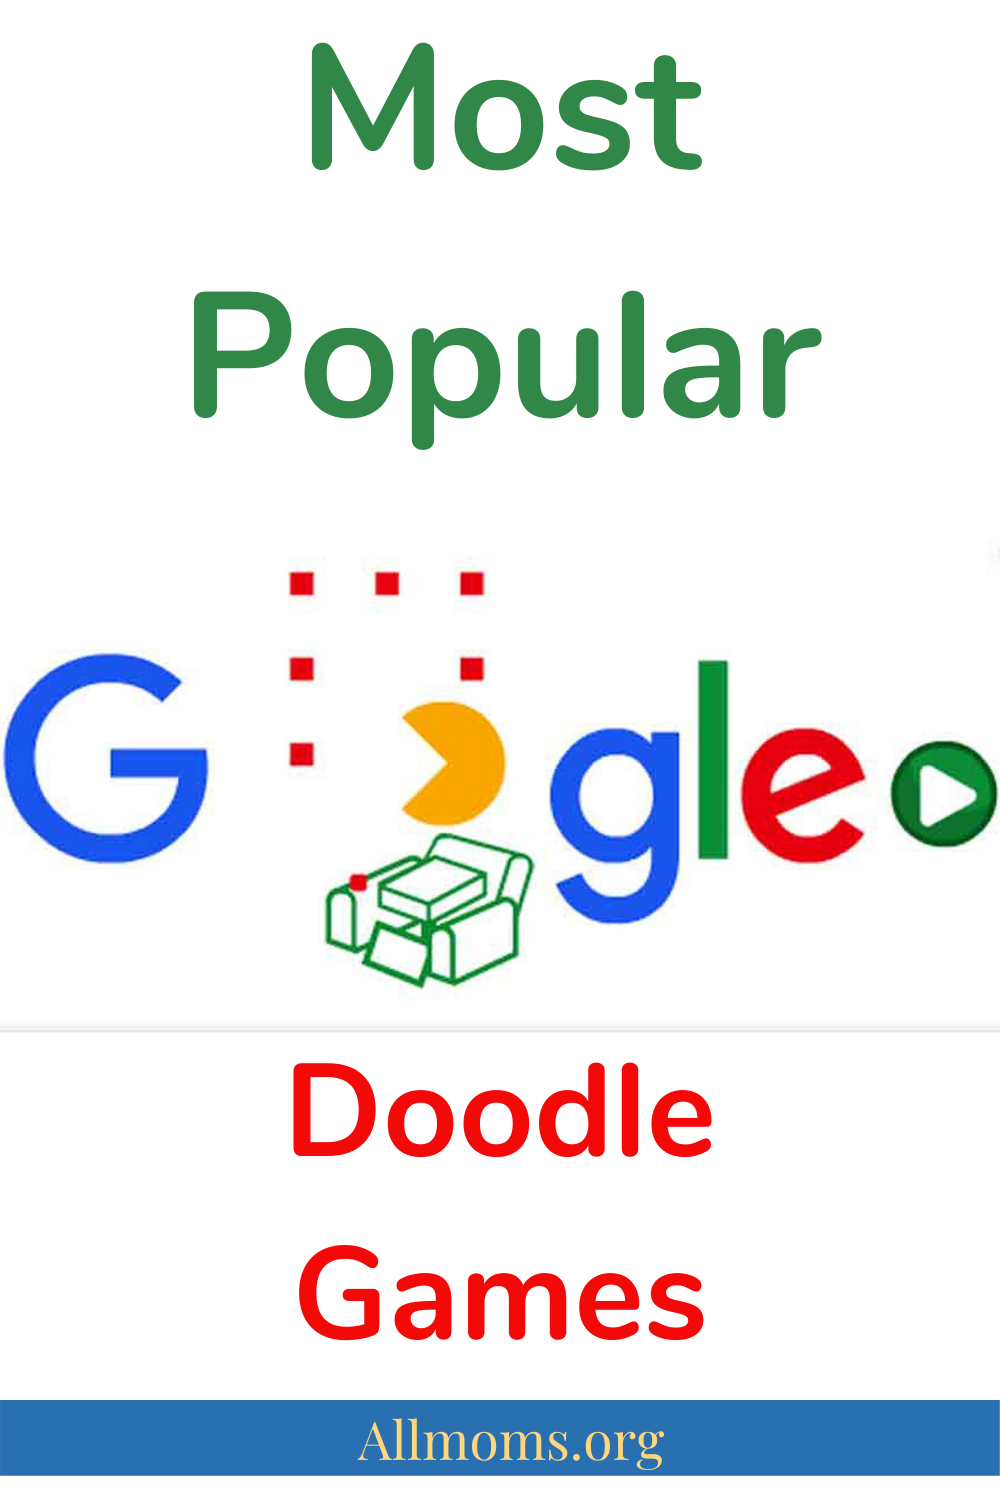 Most Popular Google Doodle Games in 2020 Doodles games